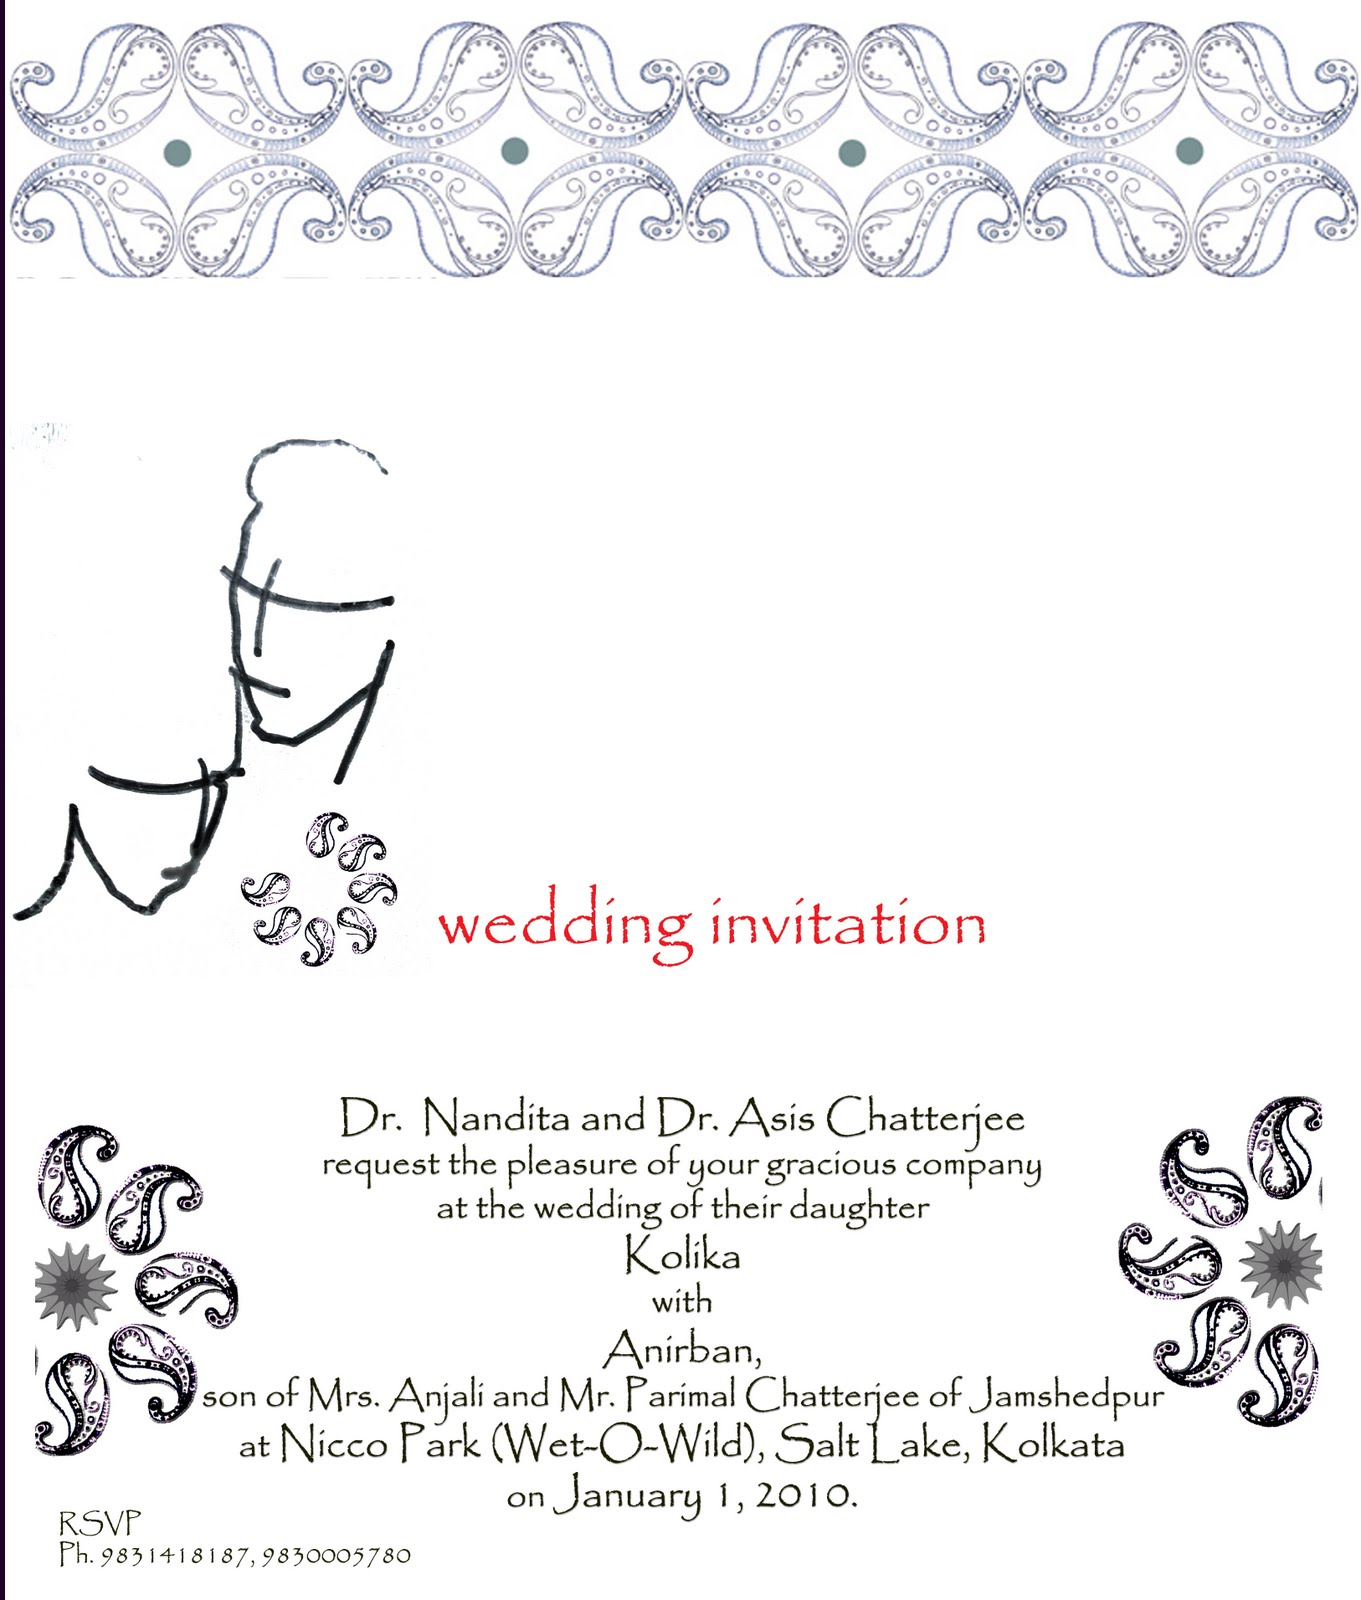 Search Orther Website : 60th wedding anniversary invitation ideas howthing